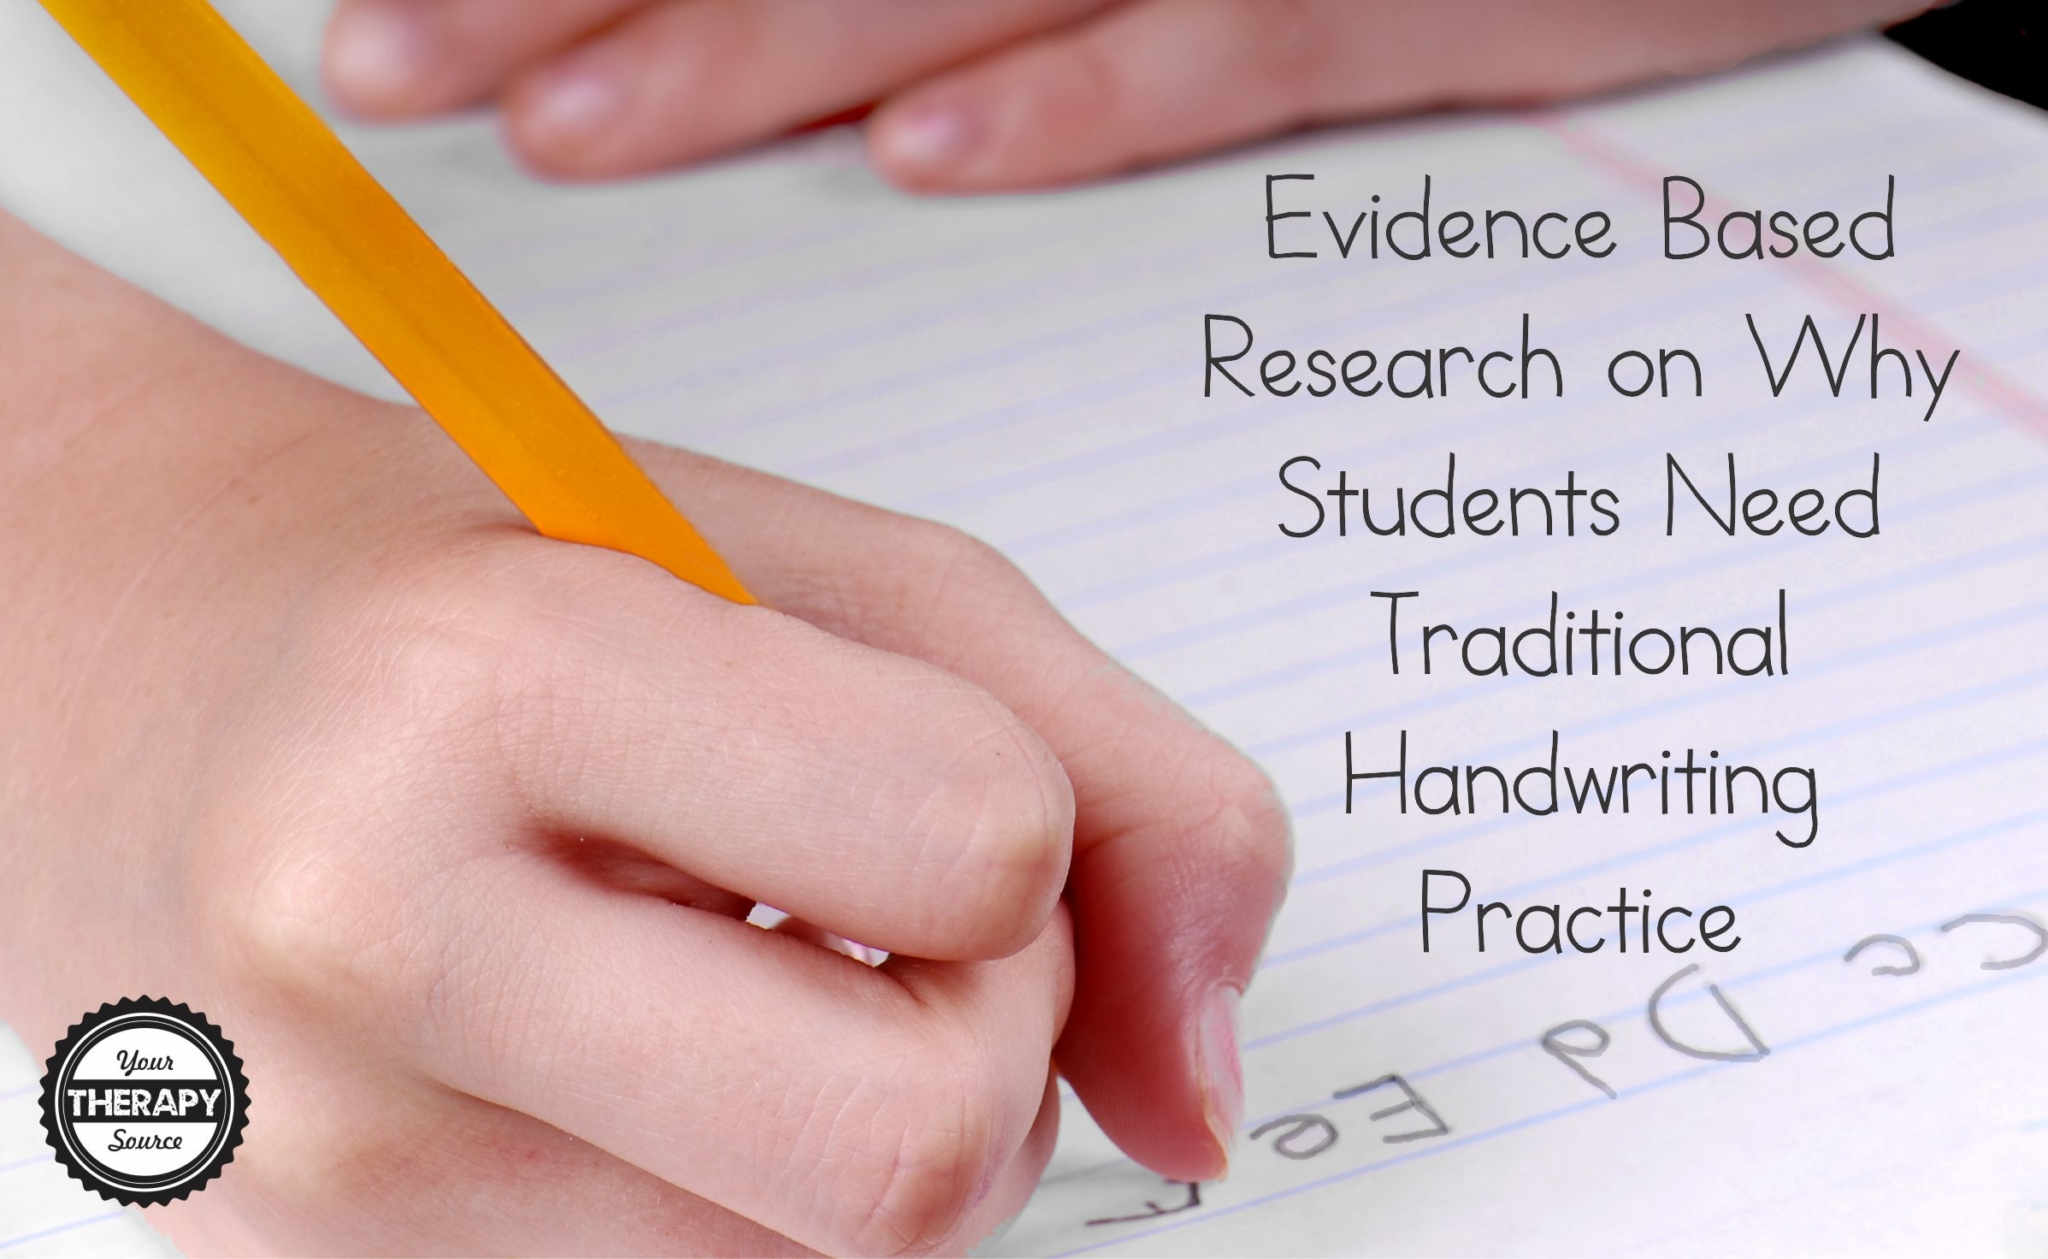 Here is some research on handwriting for Occupational Therapists, teachers, and other professionals on why students still need traditional handwriting practice.